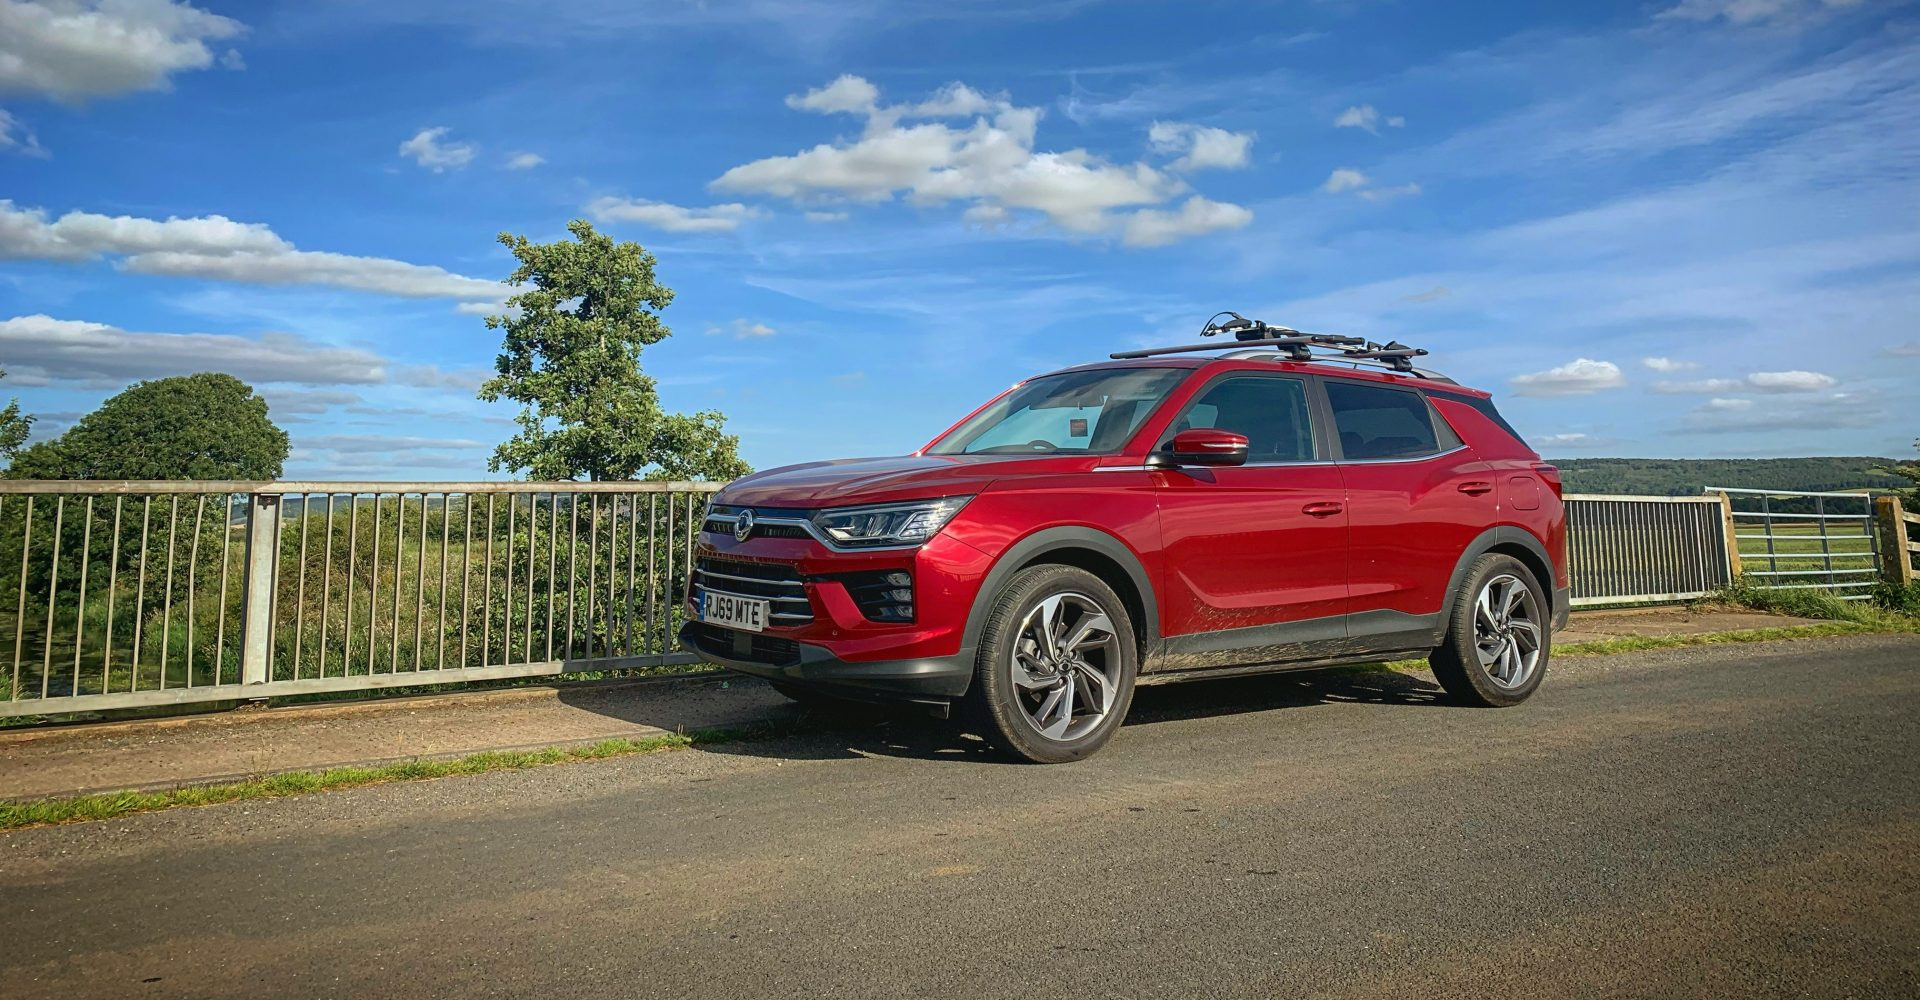 Long-term report: Exploring the technology in our SsangYong Korando